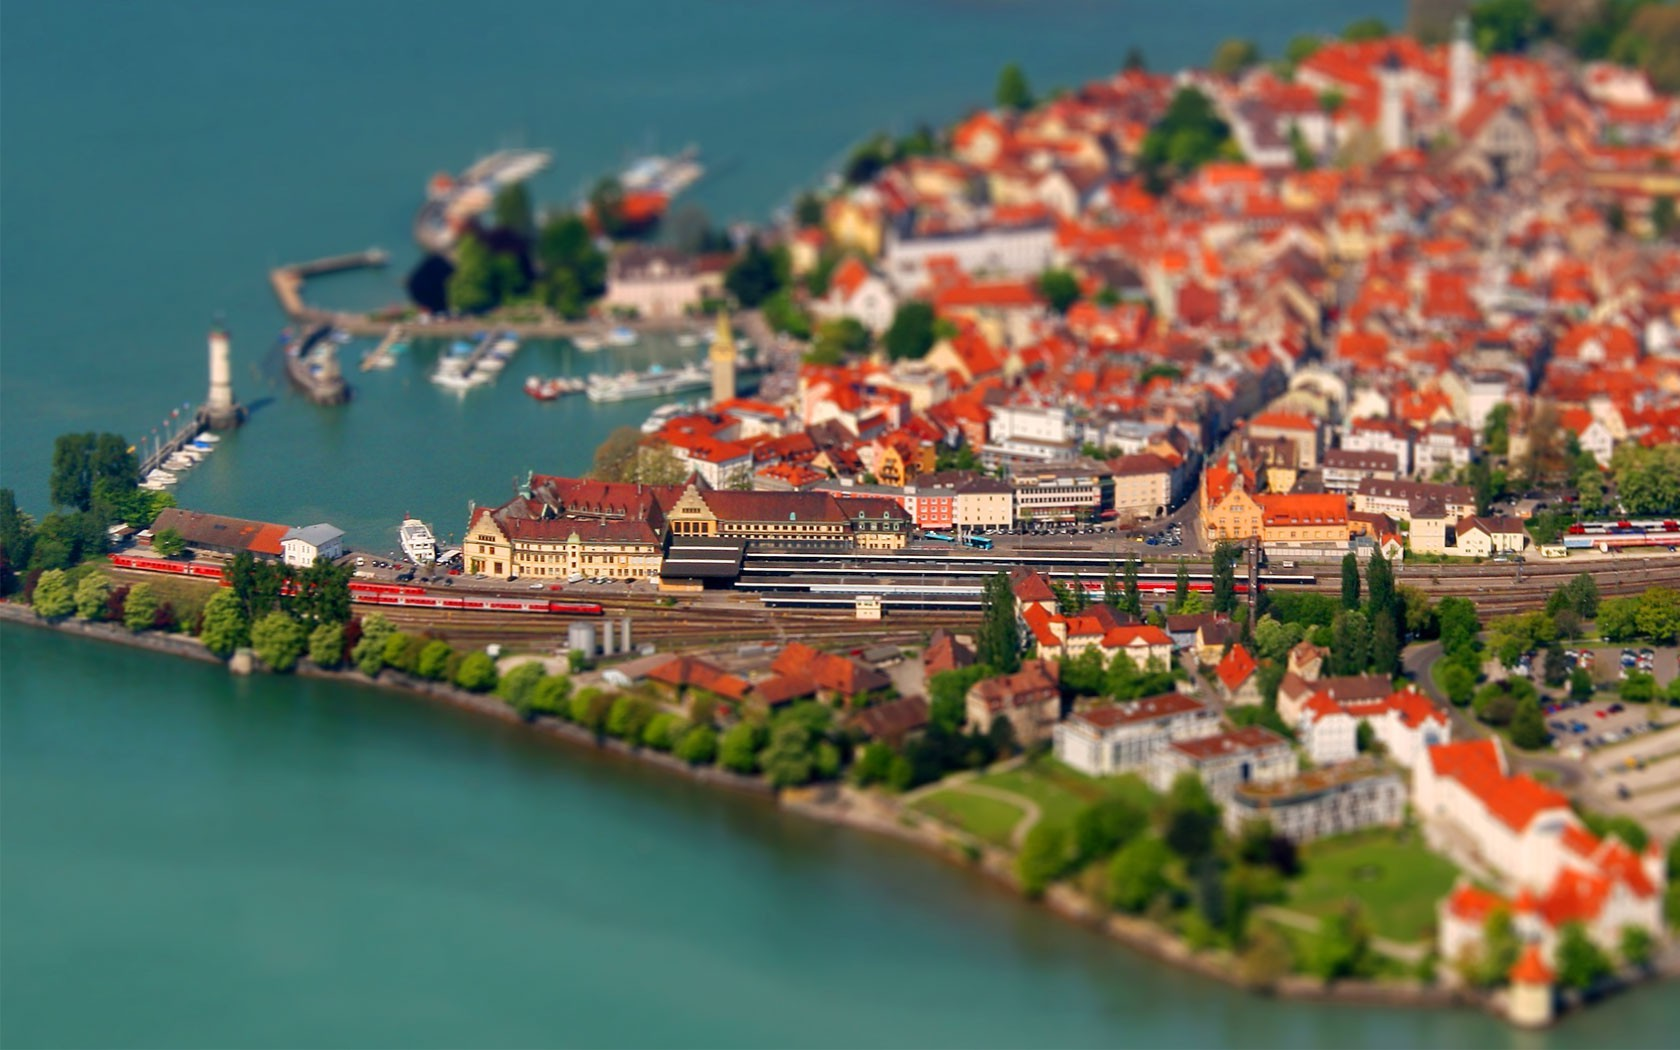 Mobile De Allemagne Lindau, Germany, Coast, Cityscape, Tilt Shift, Lake